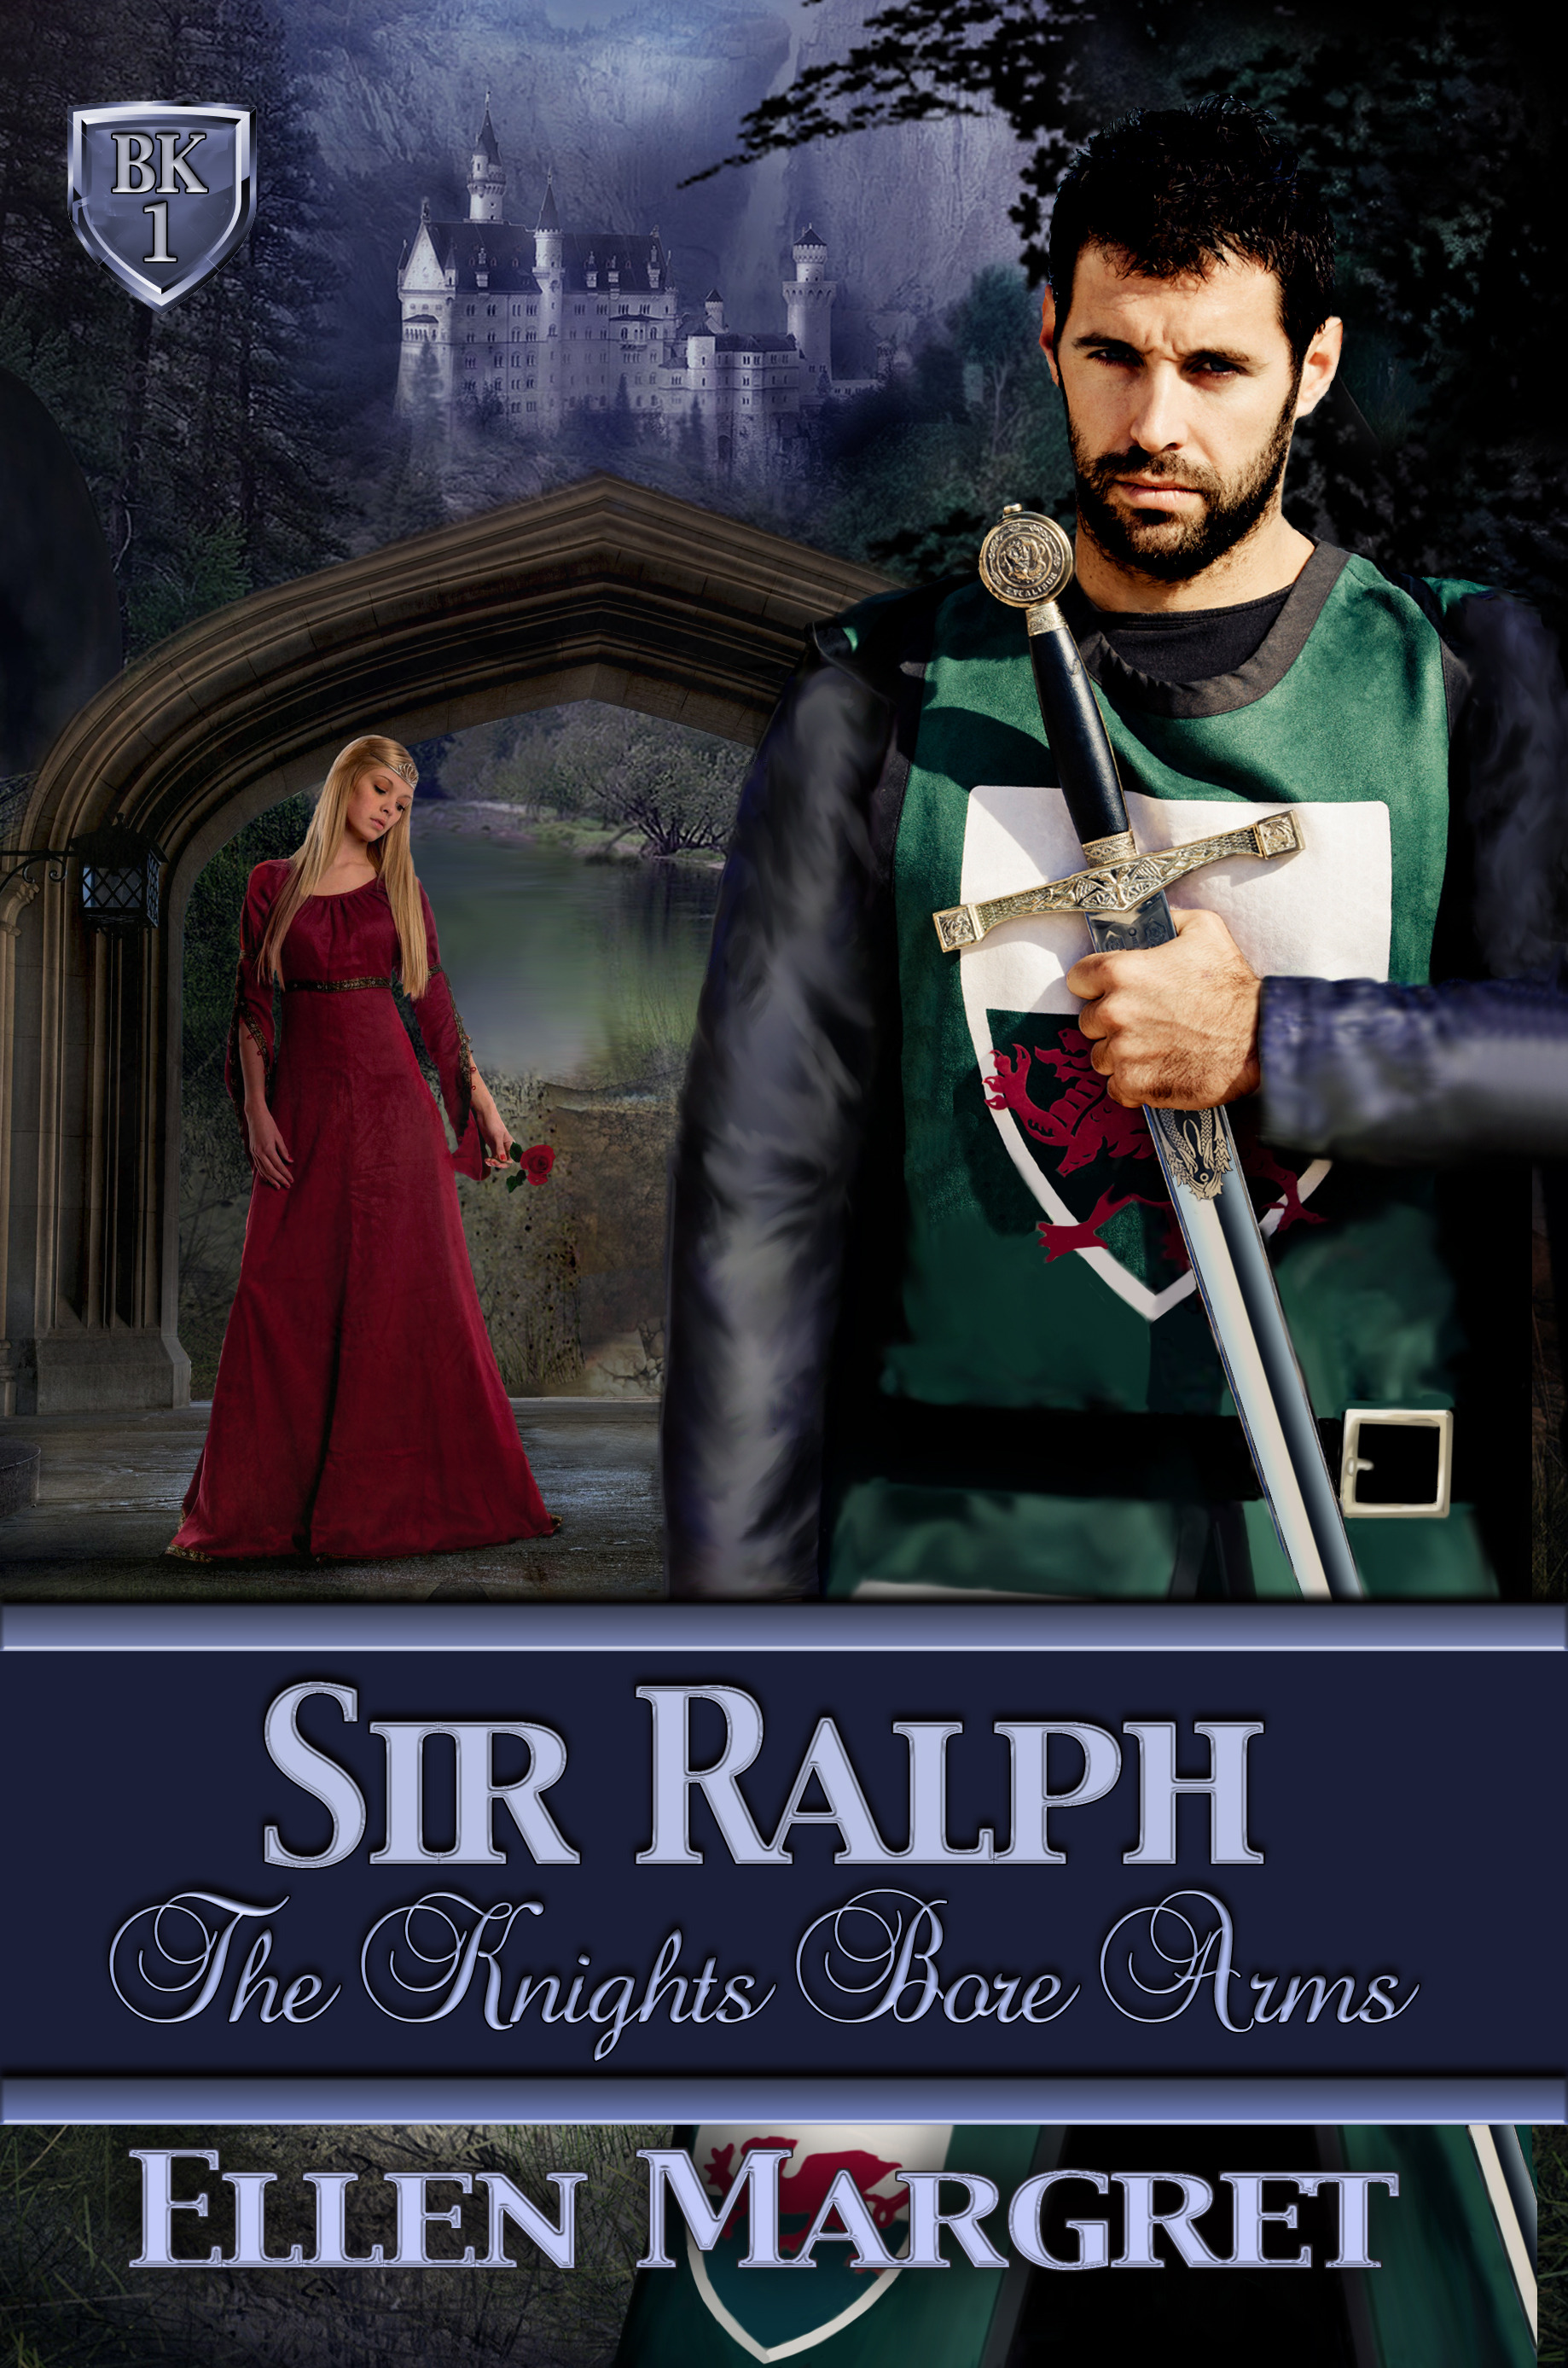 Sir Ralph: Book 1 of the Knight Bore Arms Series By: Ellen Margret